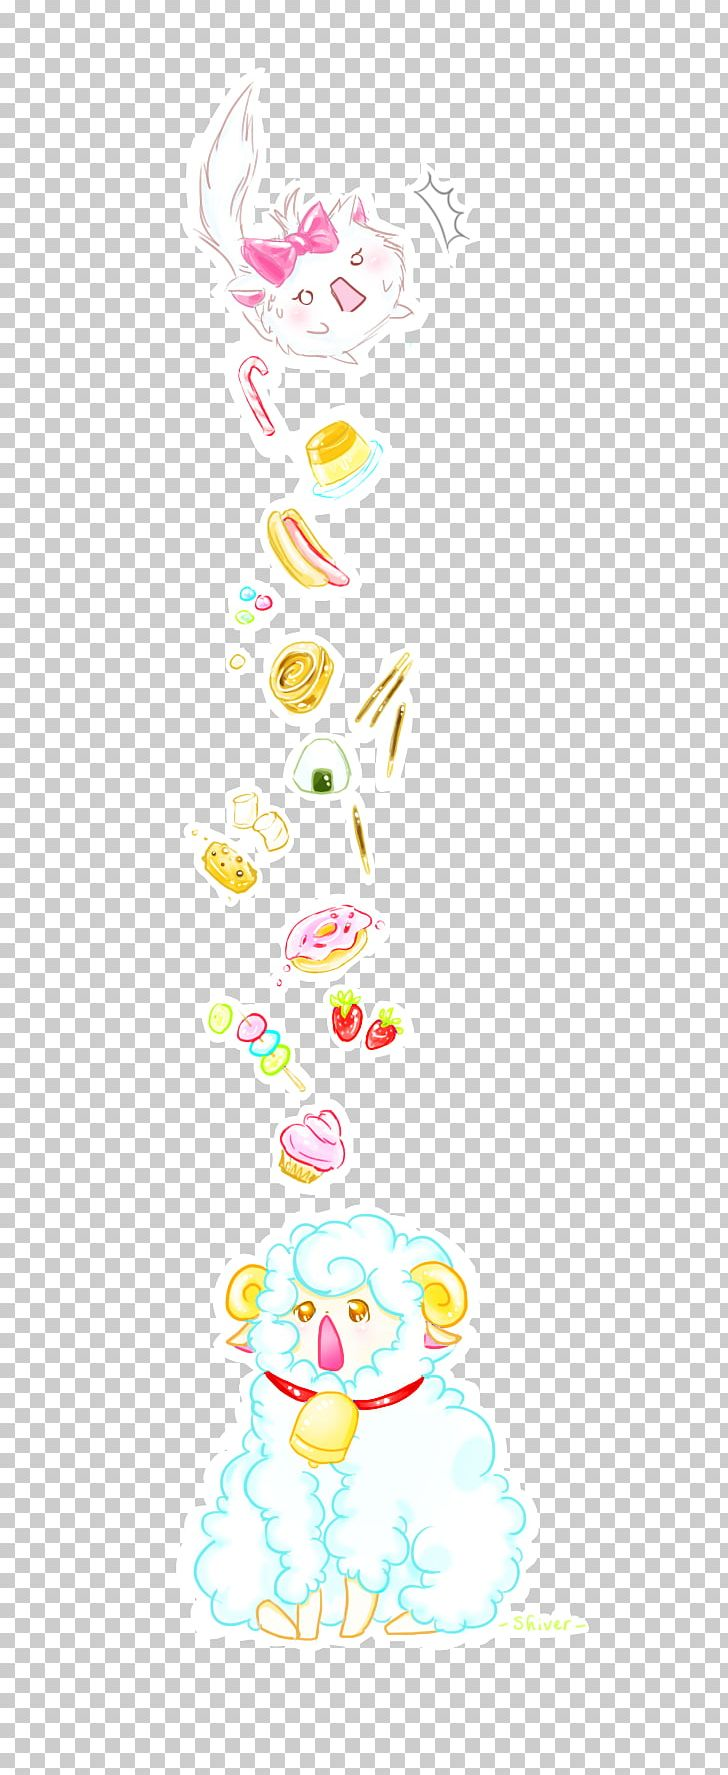 Line PNG, Clipart, Line, Om Nom, Petal, Pink, Yellow Free PNG Download